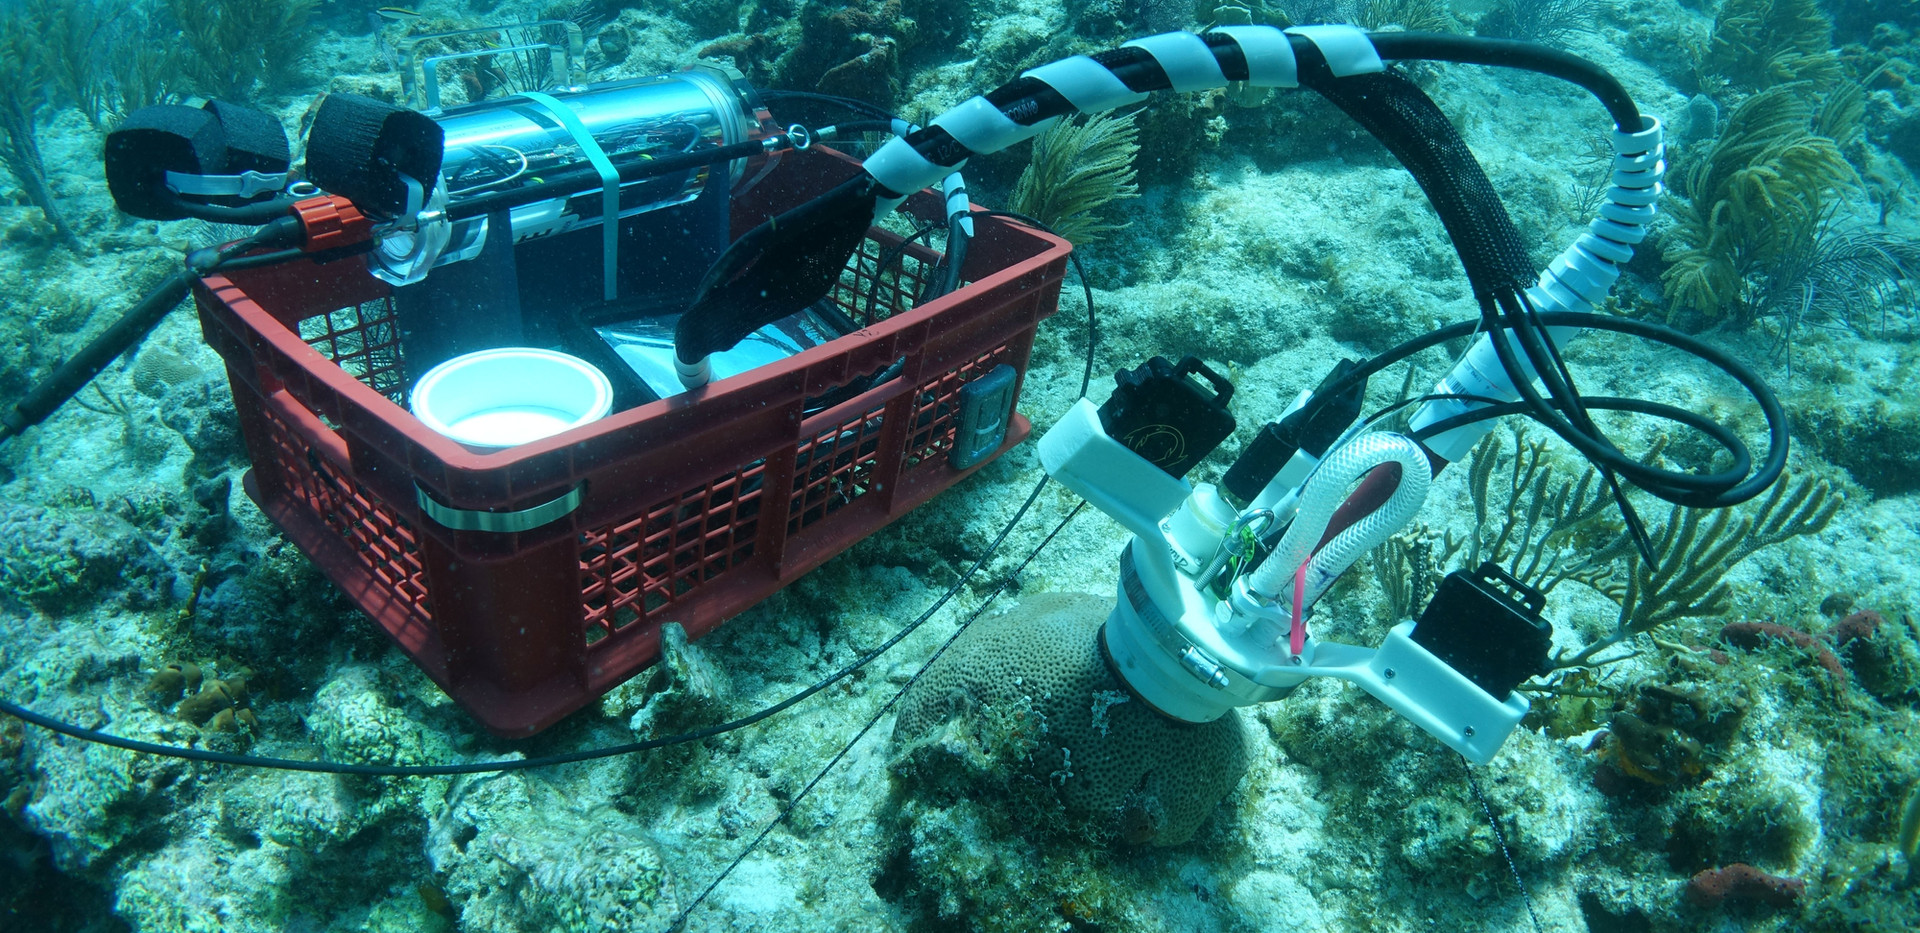 CISME deployed on small coral from its dive crate